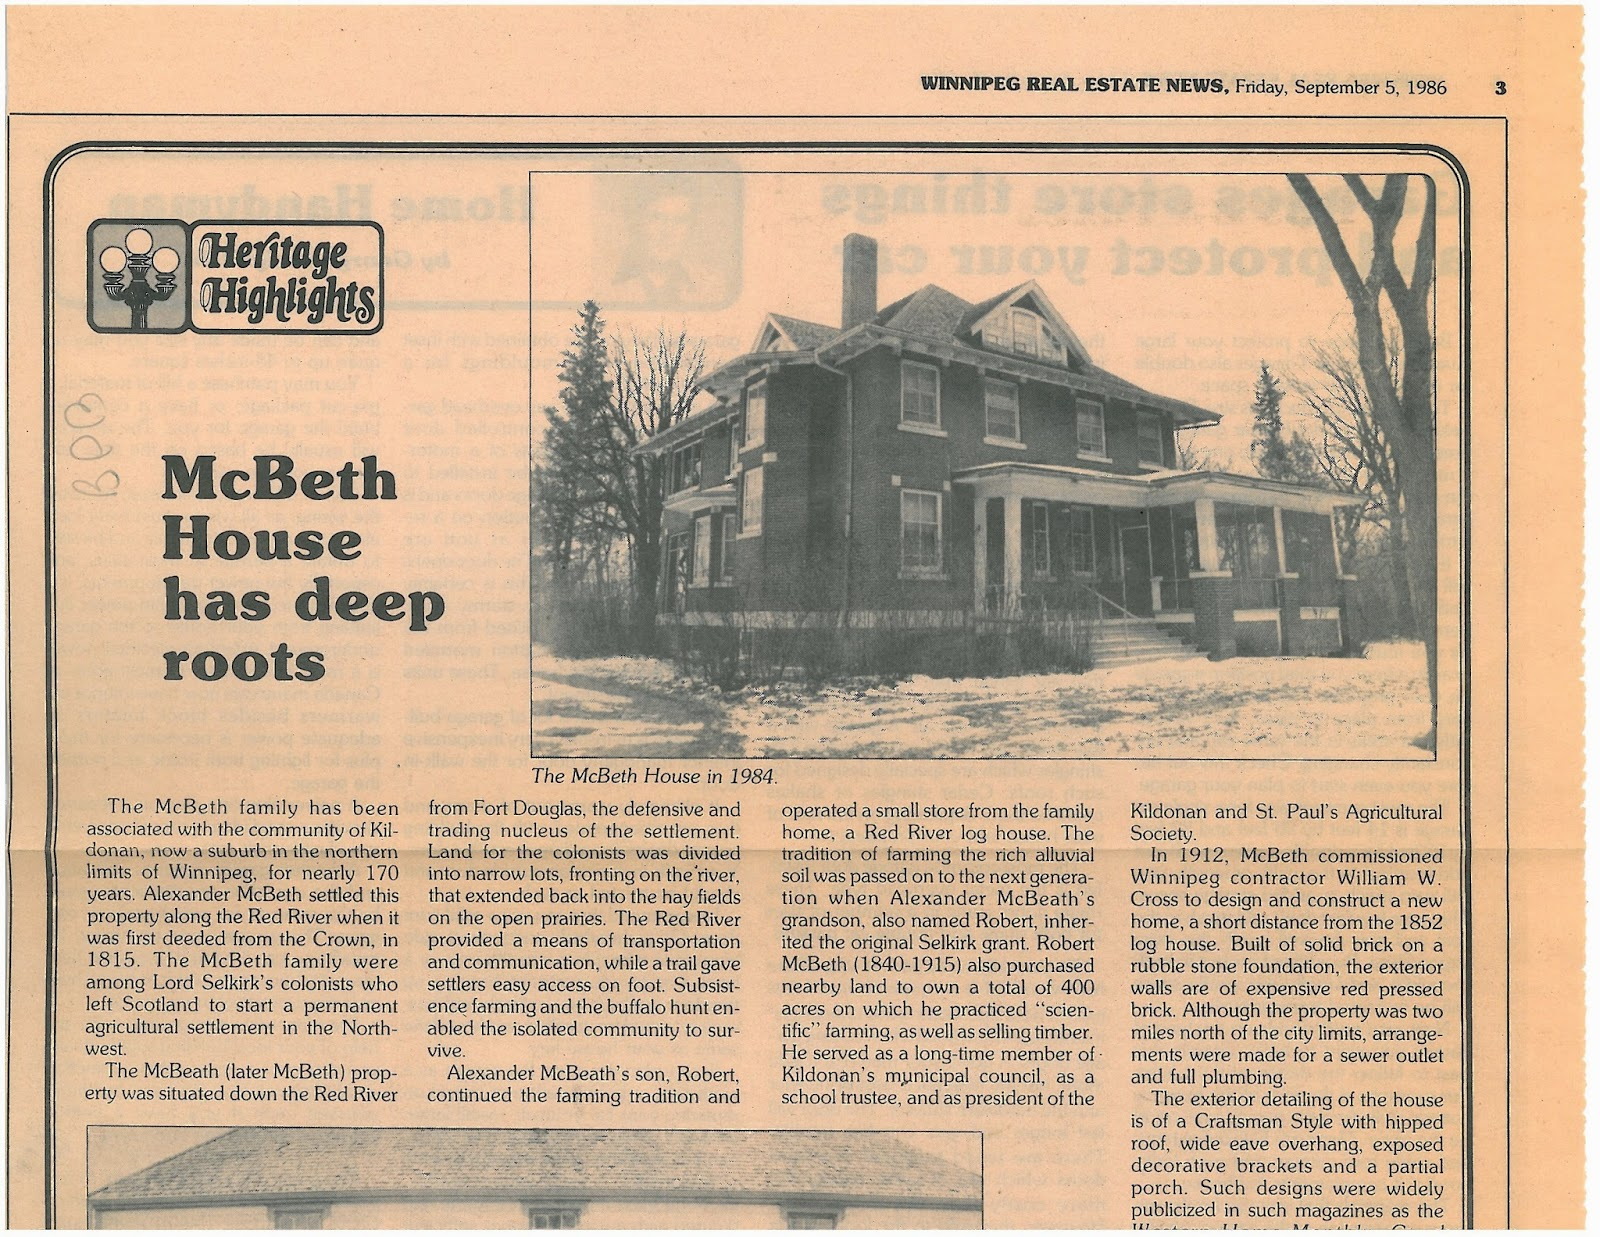 McBeth House has deep roots - click for article PDF